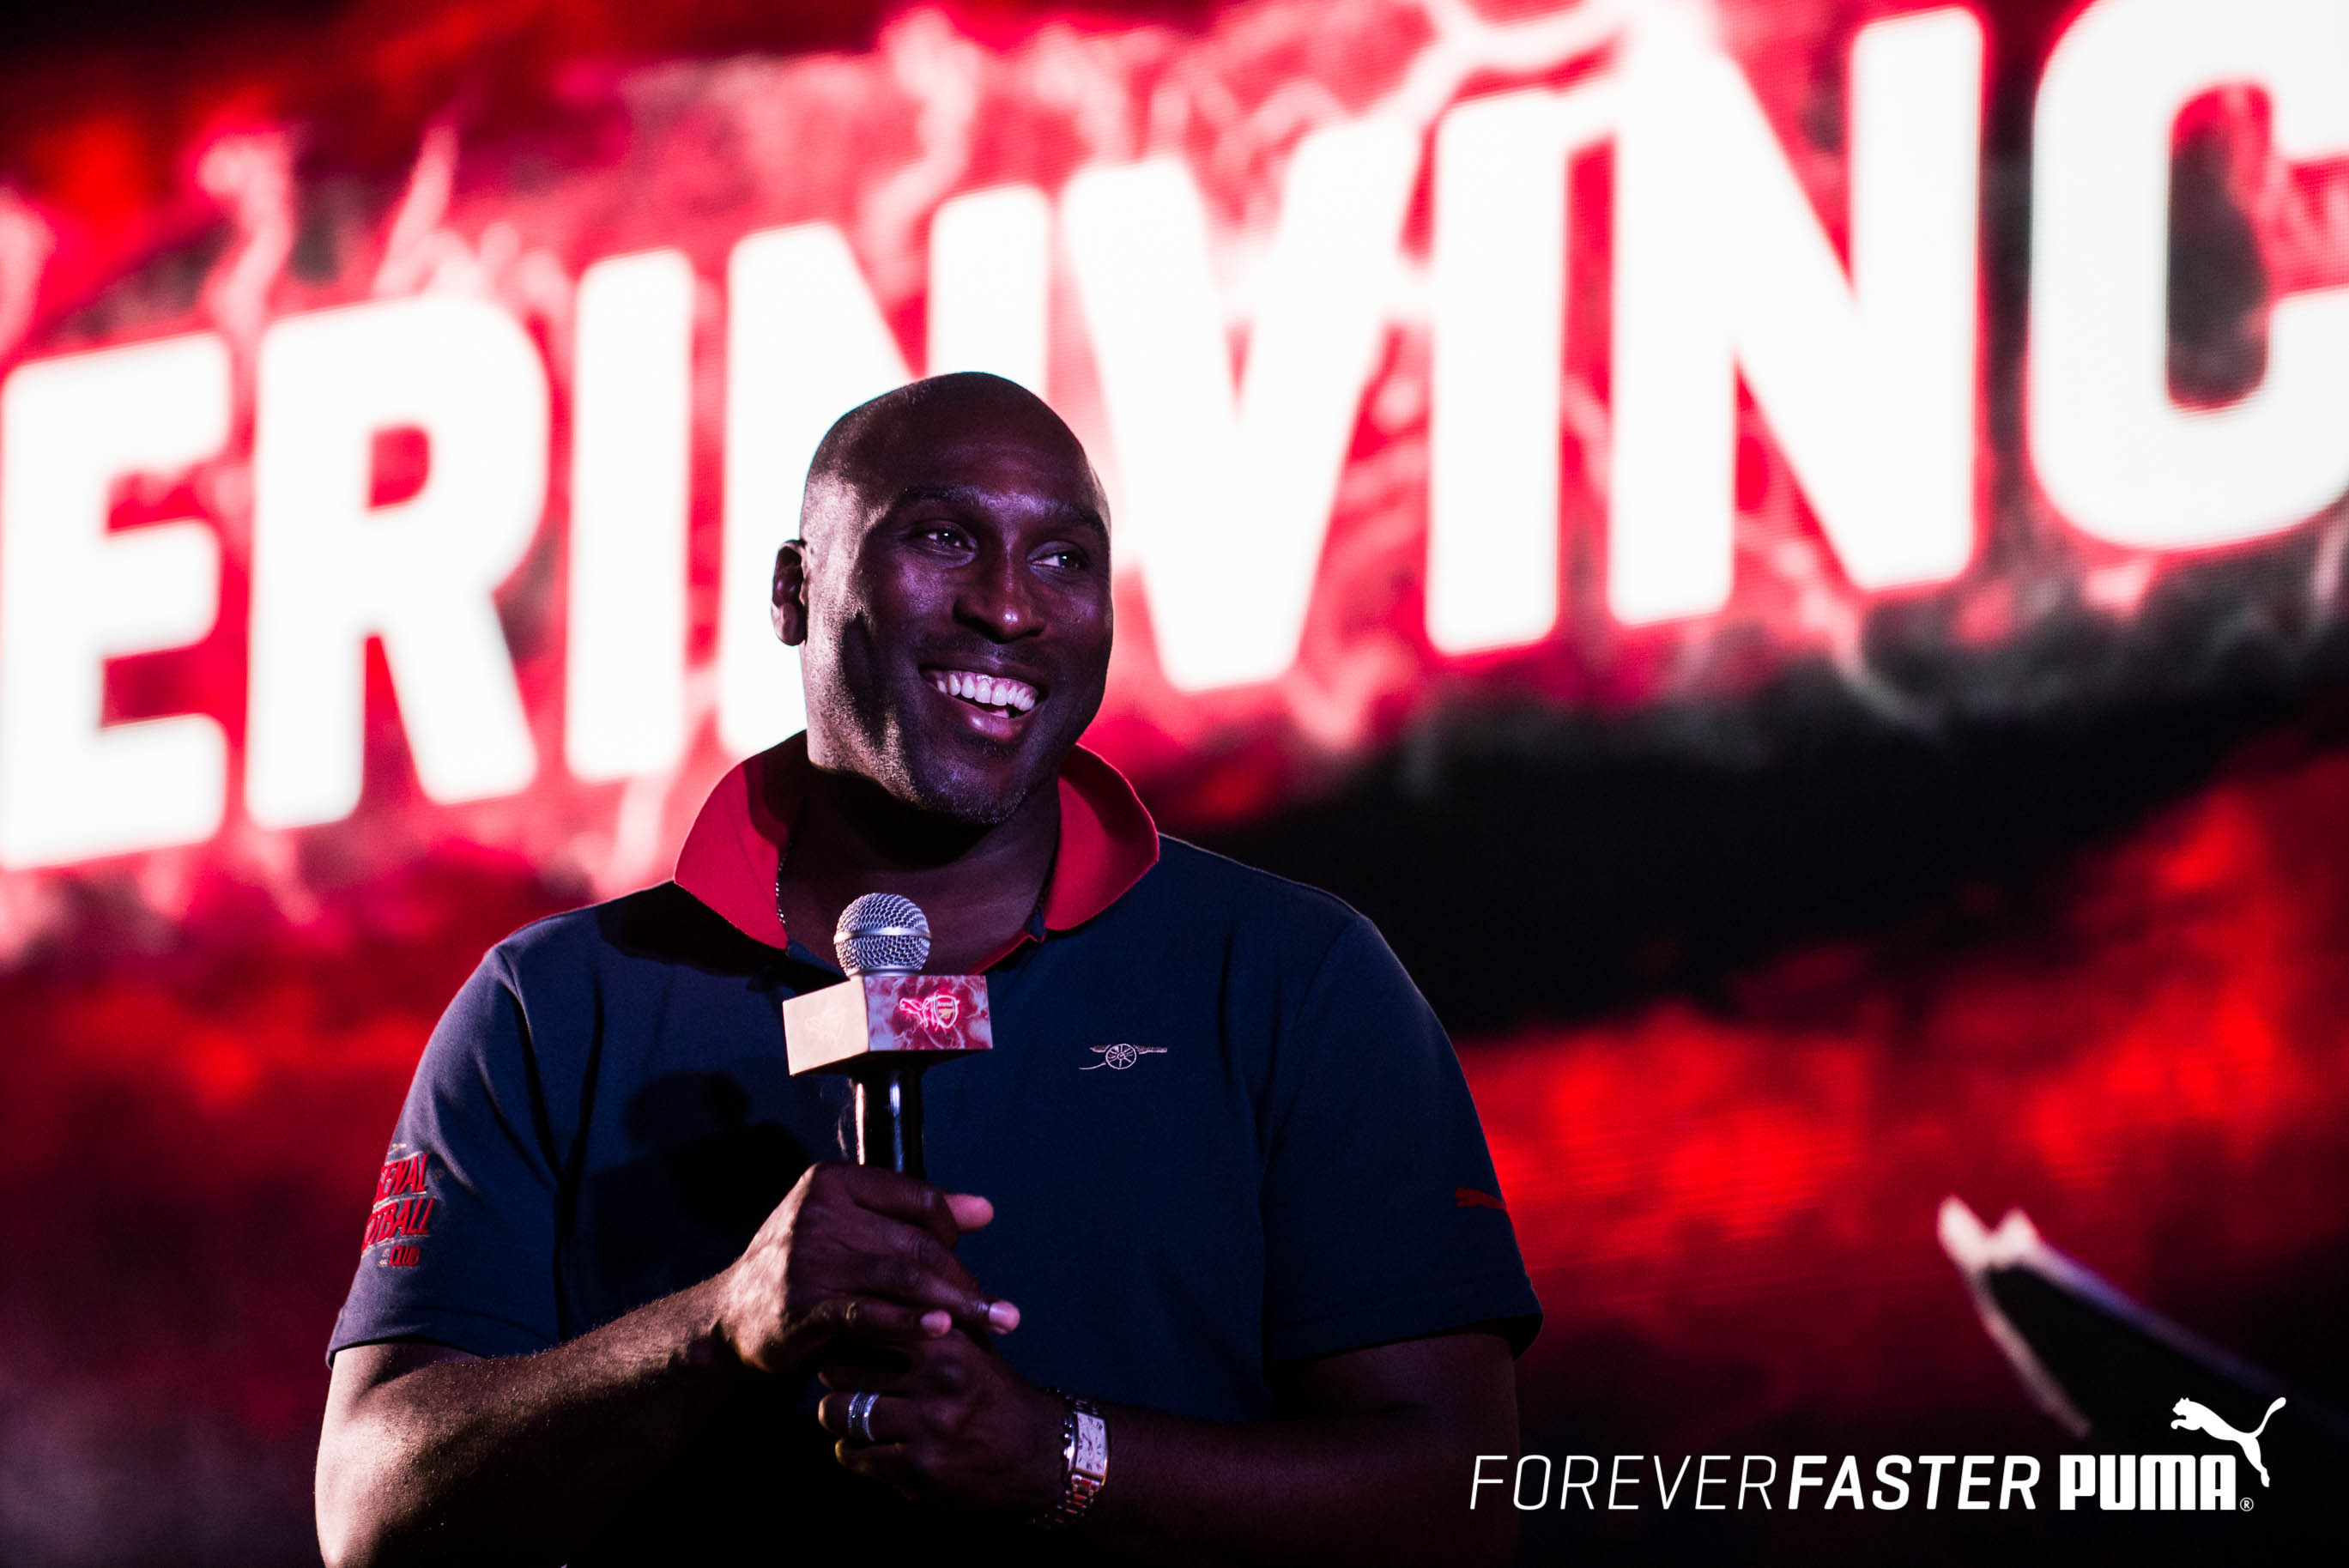 73711f0ddd5 ... kits in India for Arsenal legend Sol Campbell relives his glory days at  the launch of the PUMA- Arsenal Arsenal legends Ray Parlour ...